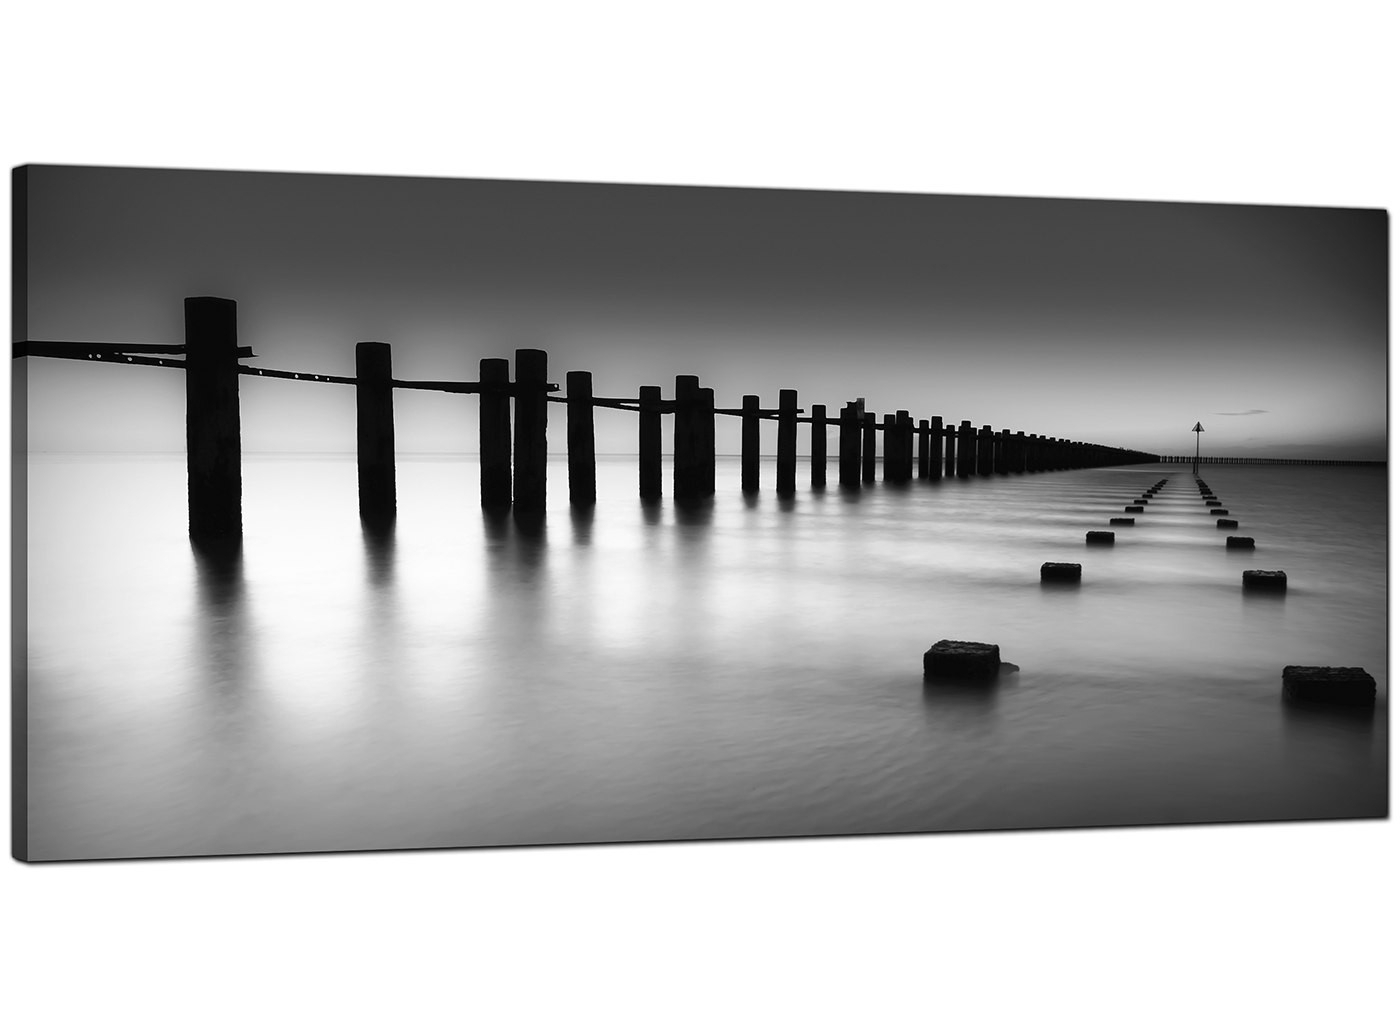 Modern Black And White Canvas Art Of The Sea Throughout Most Current Black And White Canvas Wall Art (View 4 of 15)